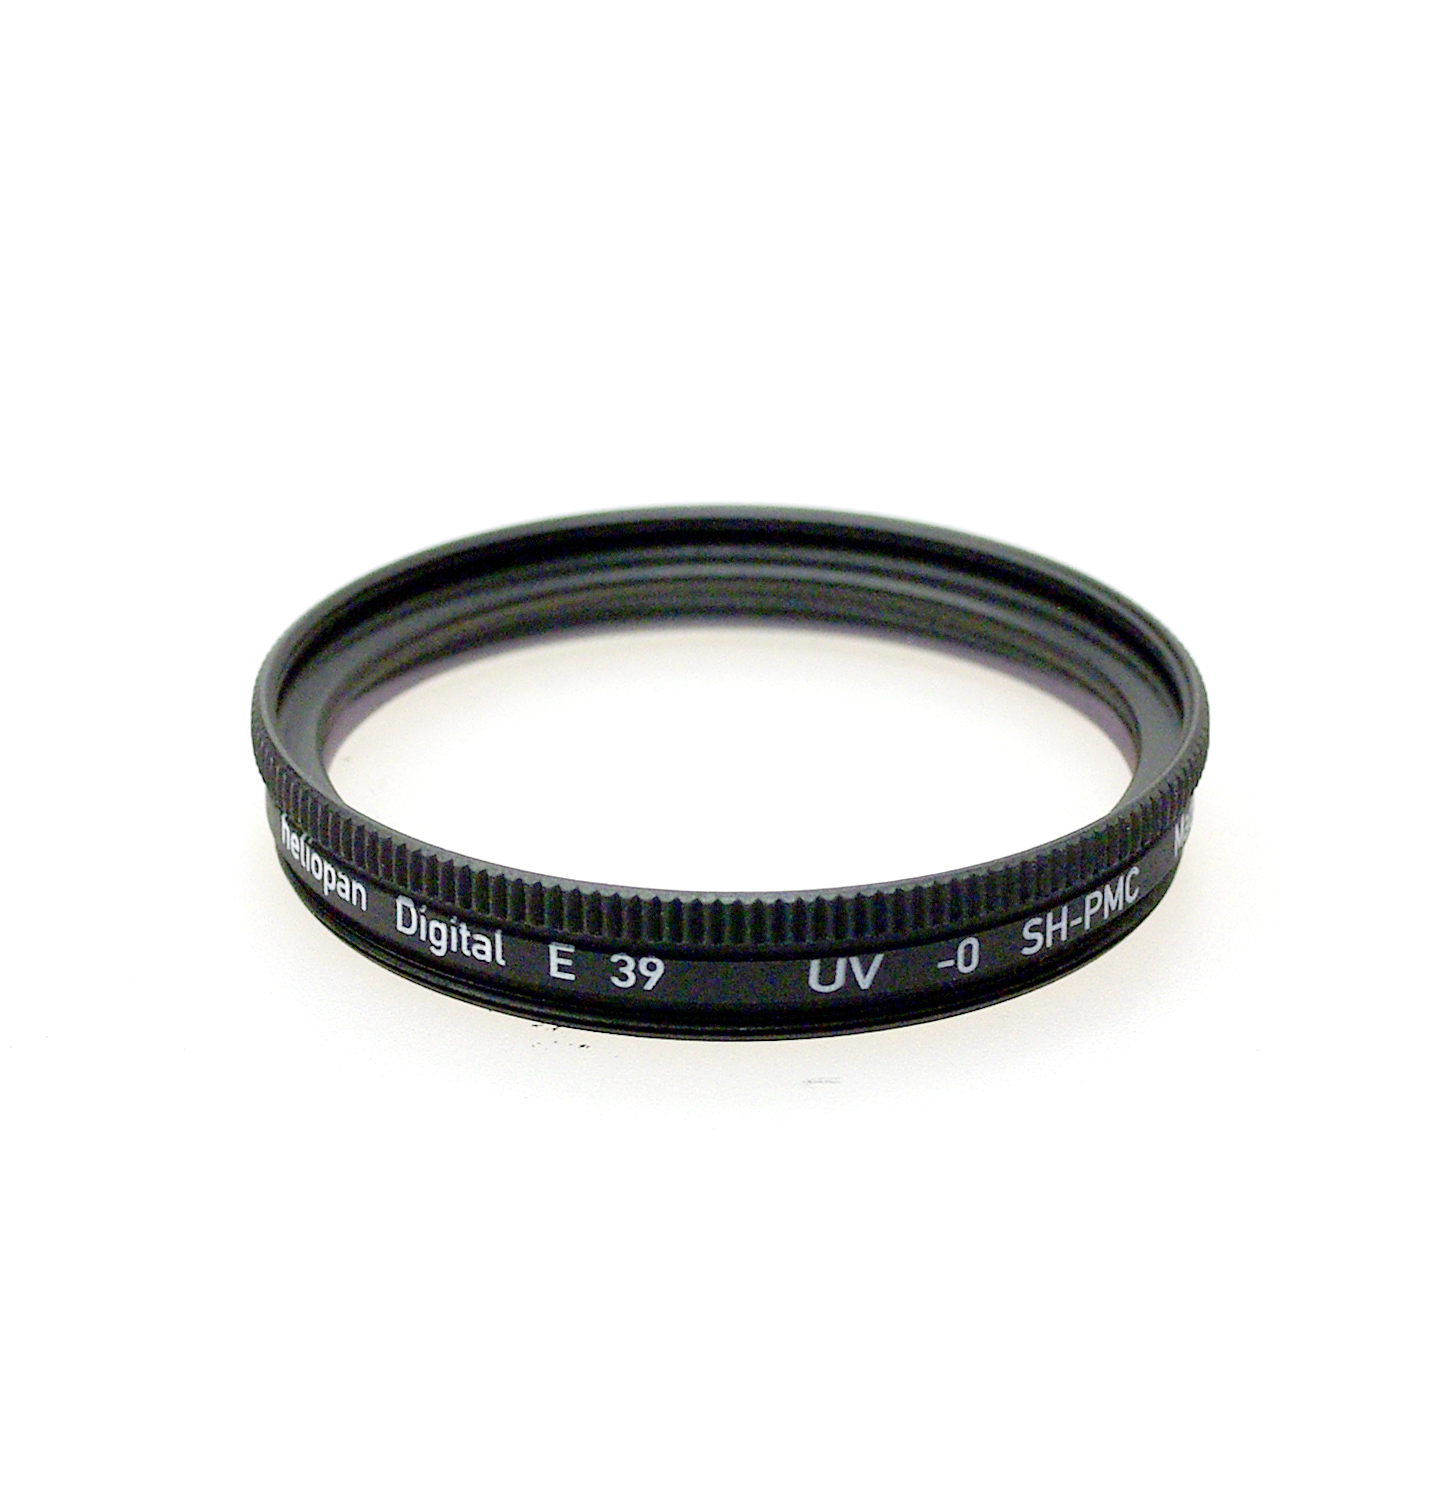 Heliopan sh-pmc multi coated uv protection filter